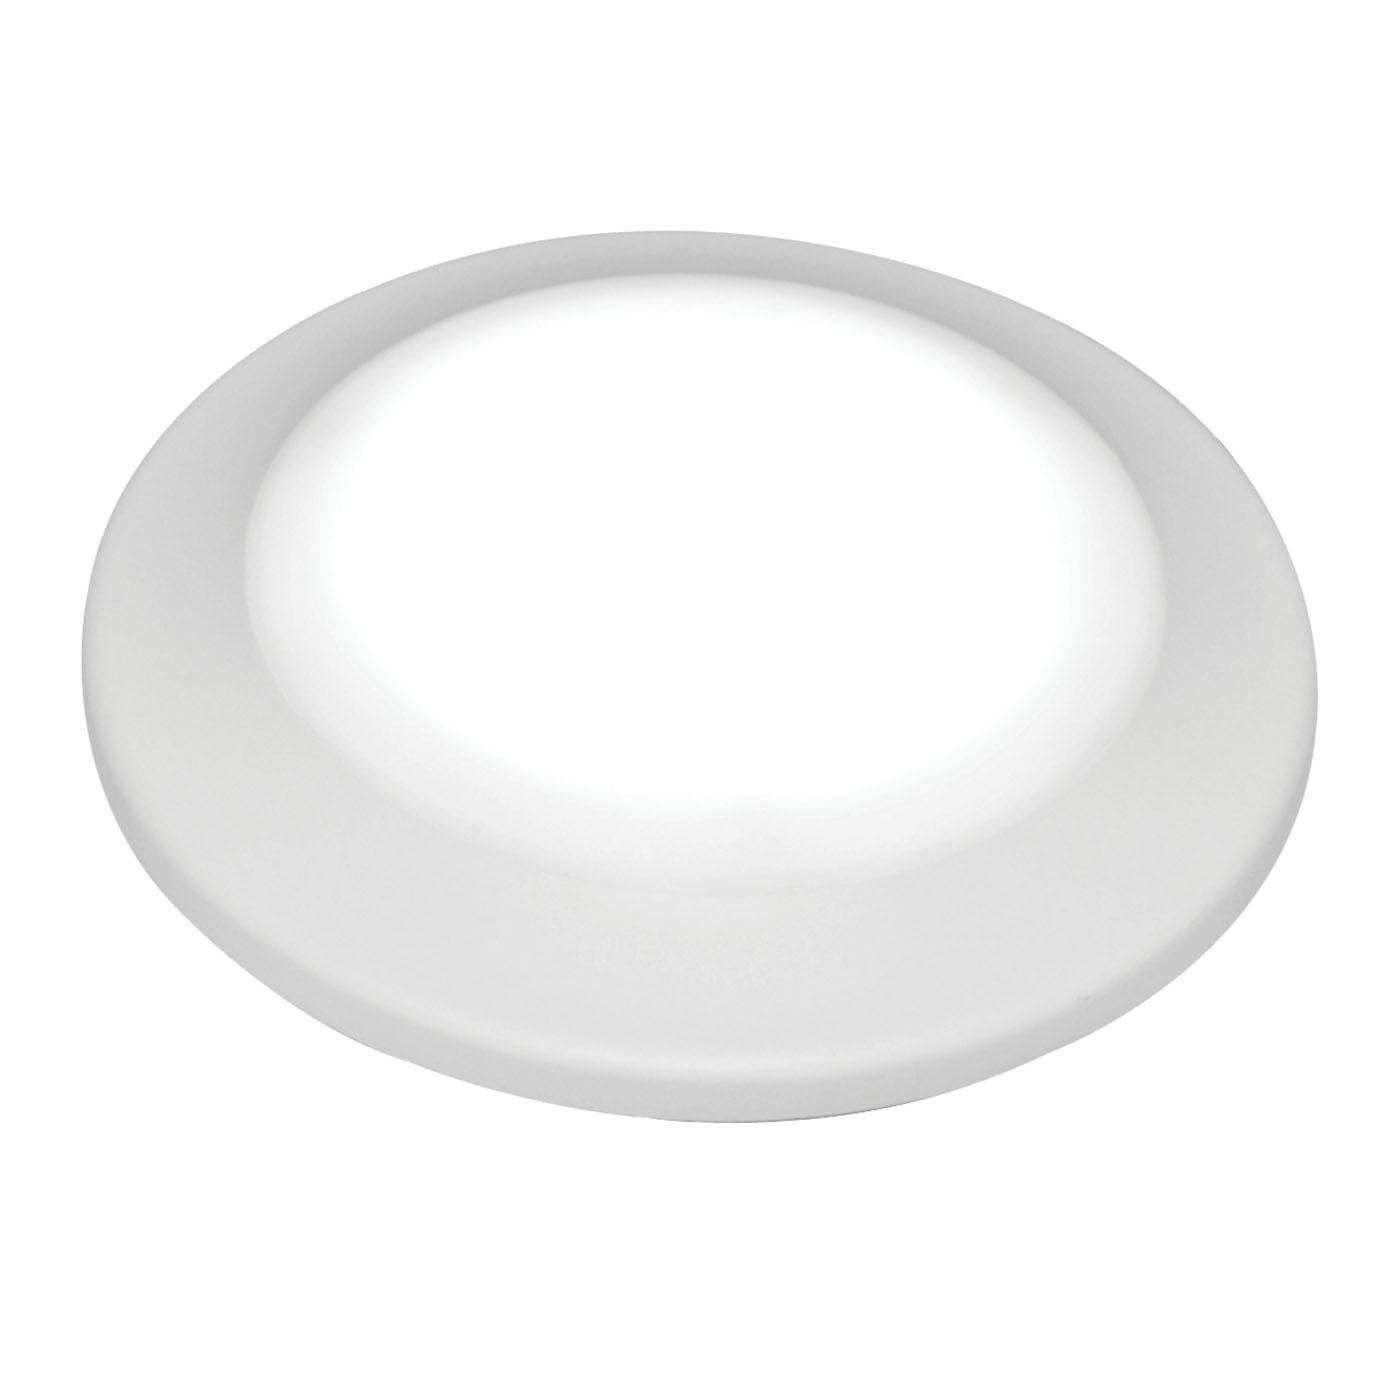 Nsl Dl 6 15d 27 Rb Dimmable Inch Led Down Light Round 120